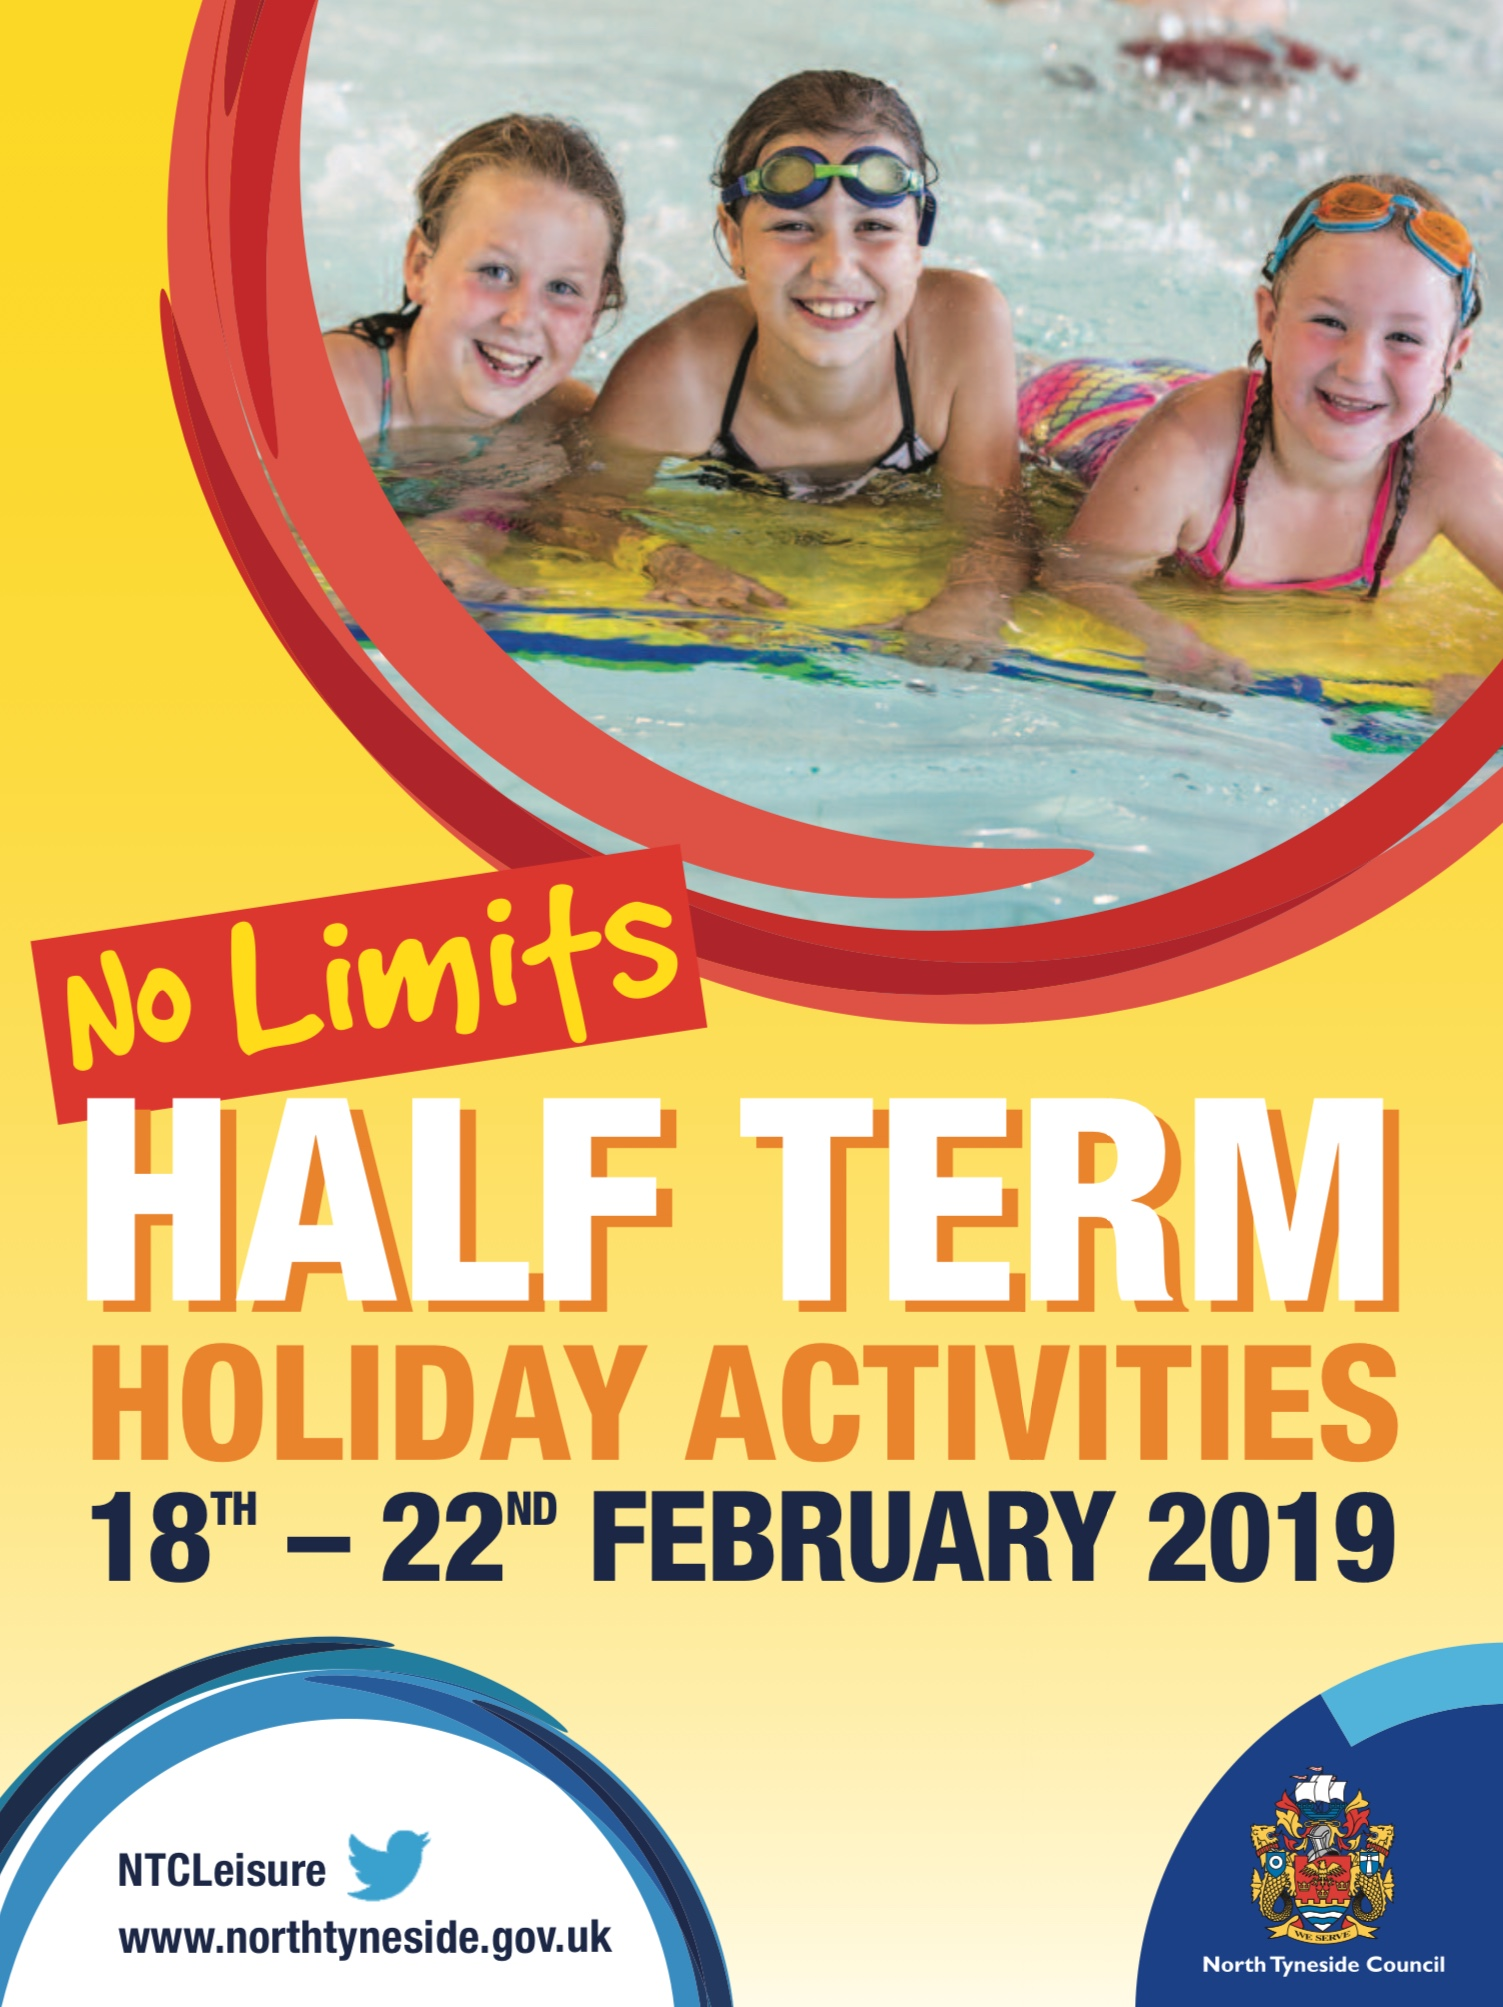 No Limits February 2019 Half Term Holiday Activities